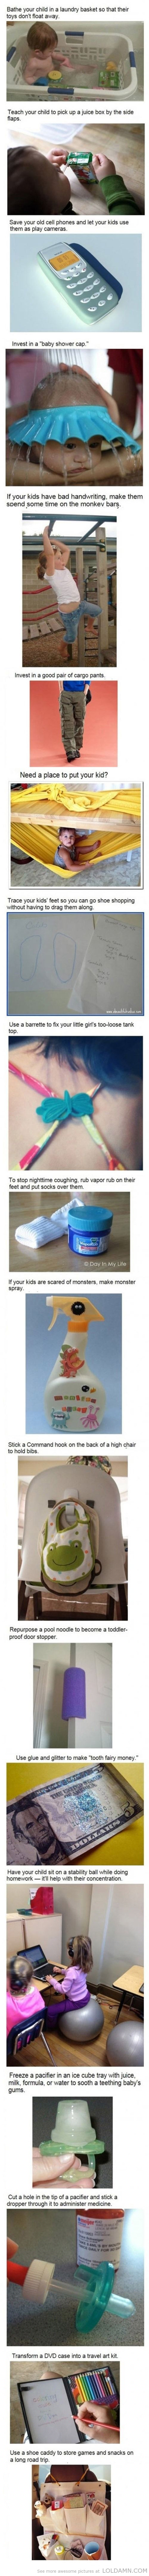 Parenting tips, doing it right…lol